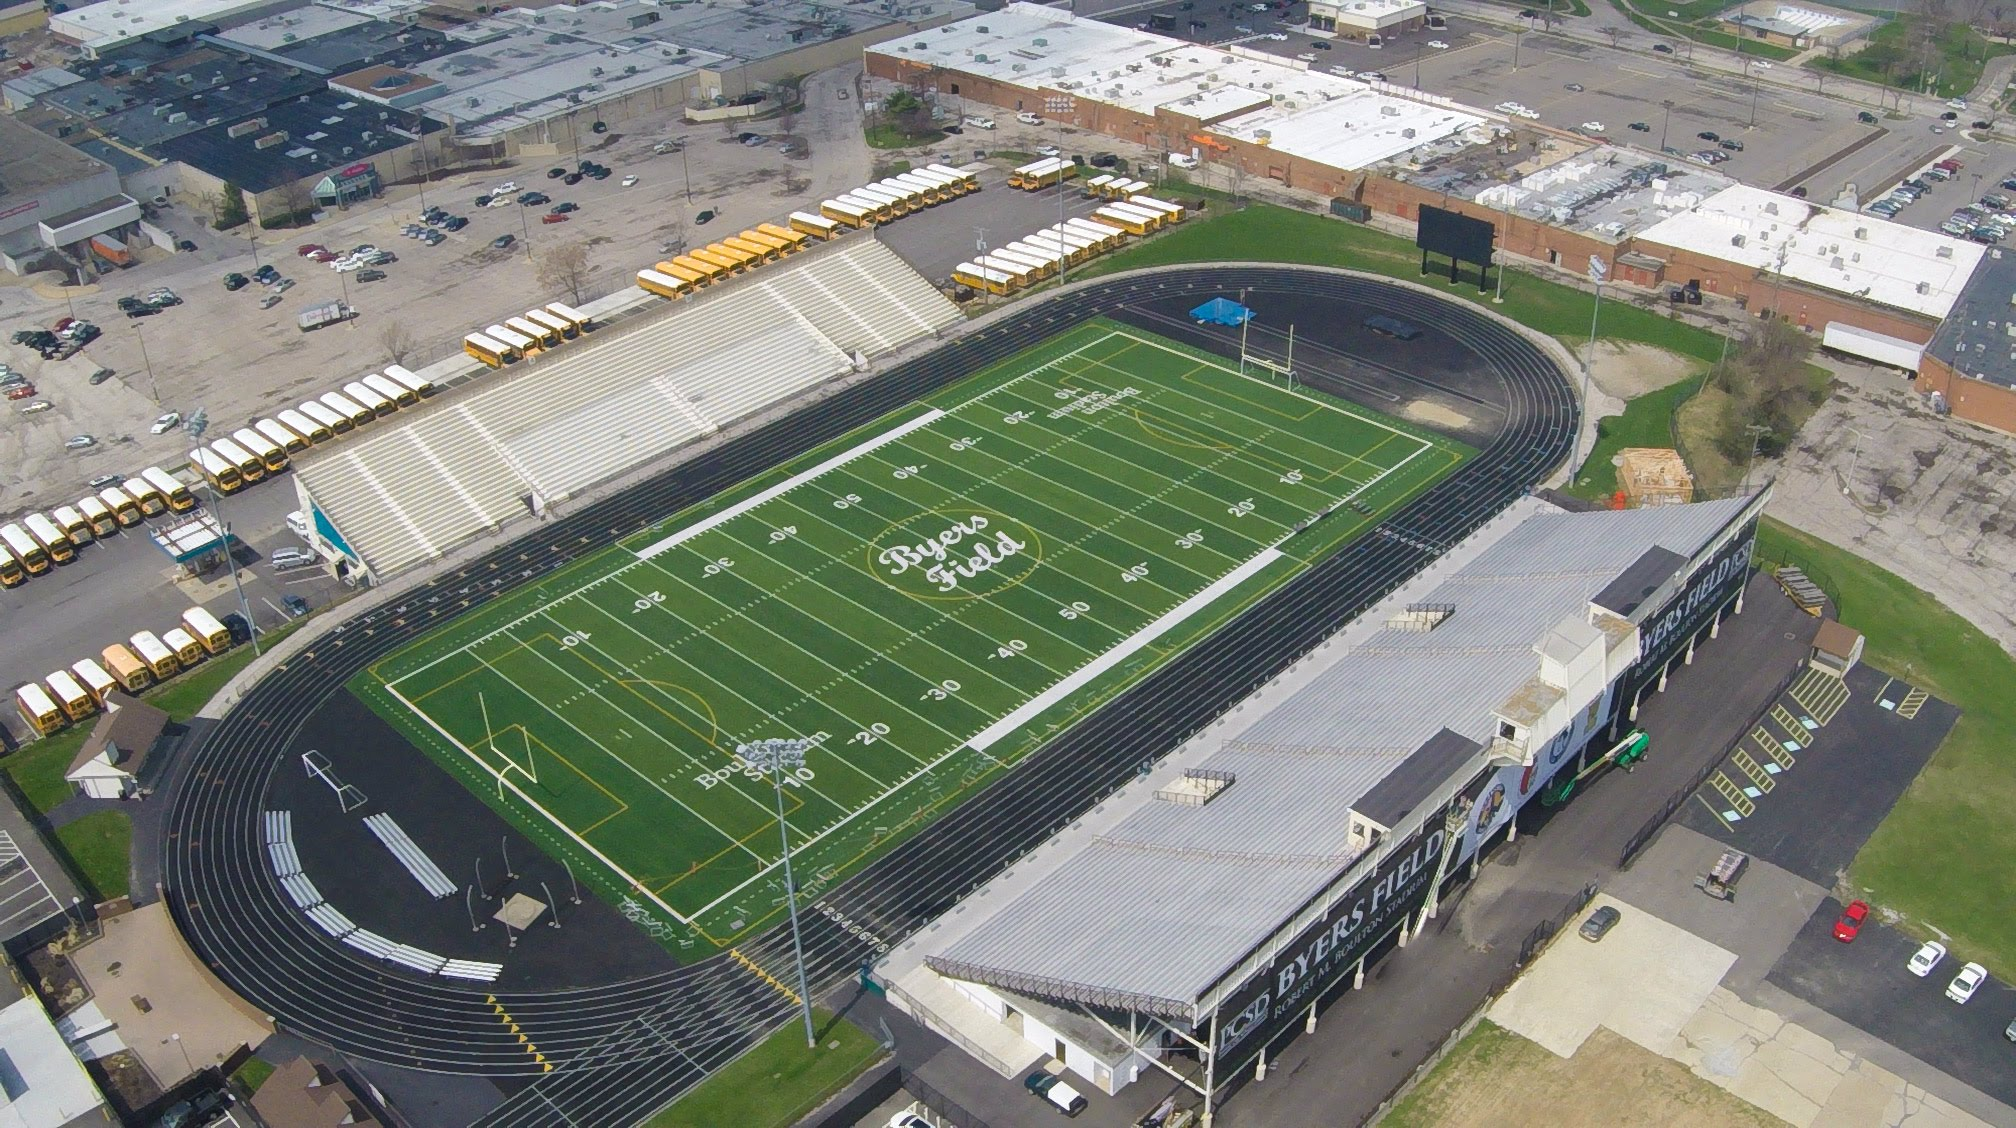 New Admission Policy at Byers Field: No Backpacks or bags allowed in Stadium